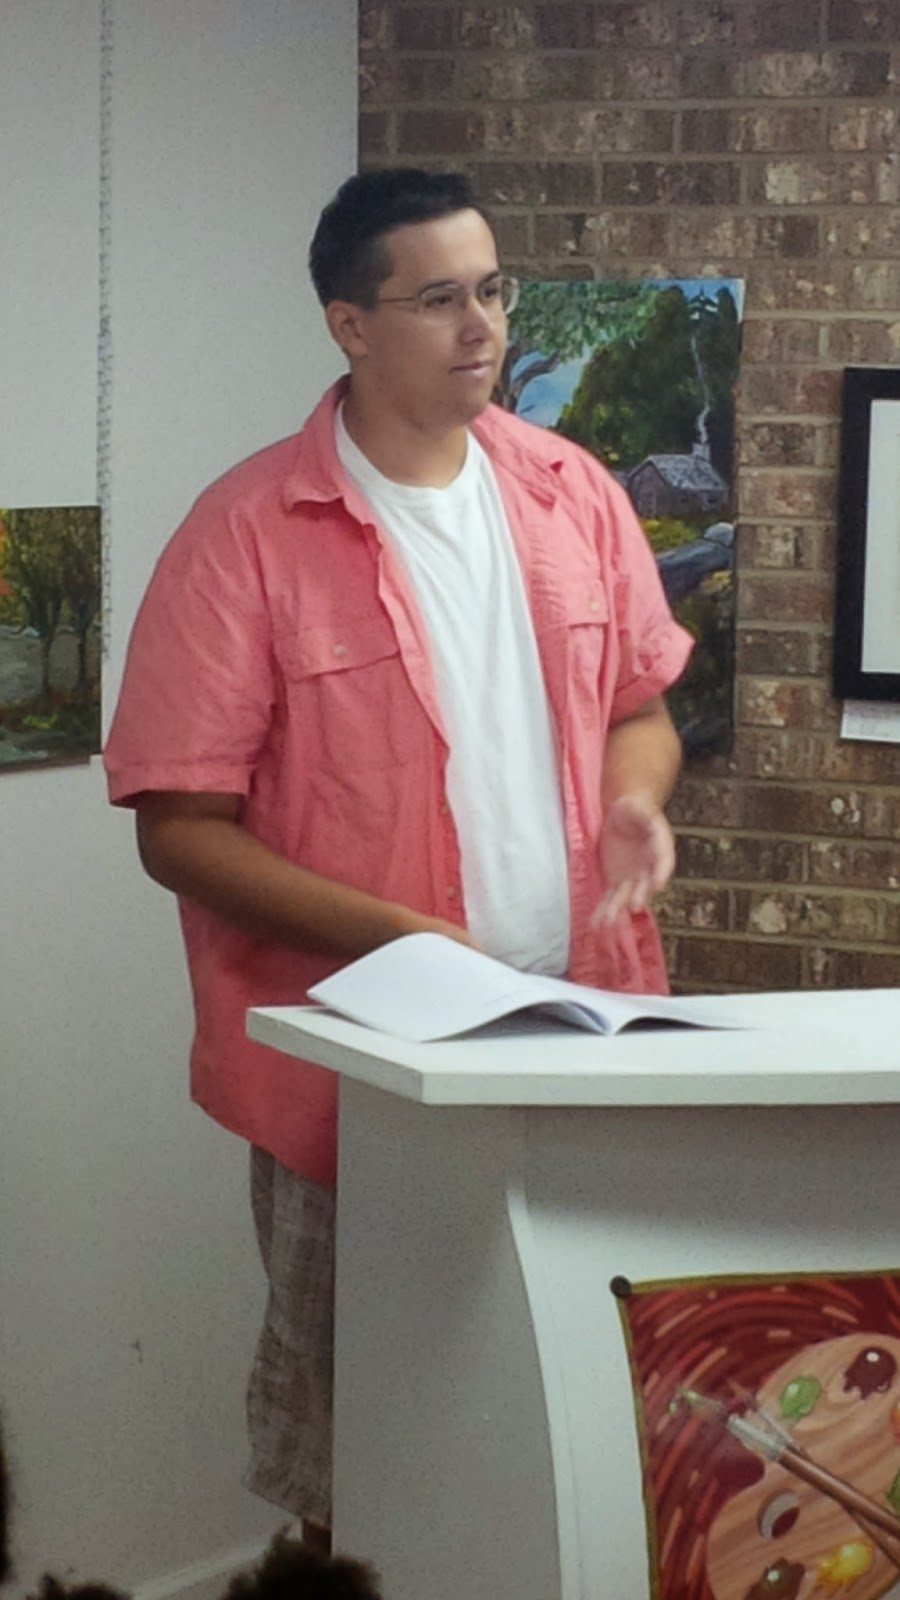 Ryan Petty, Indian Trail Cultural Arts Center